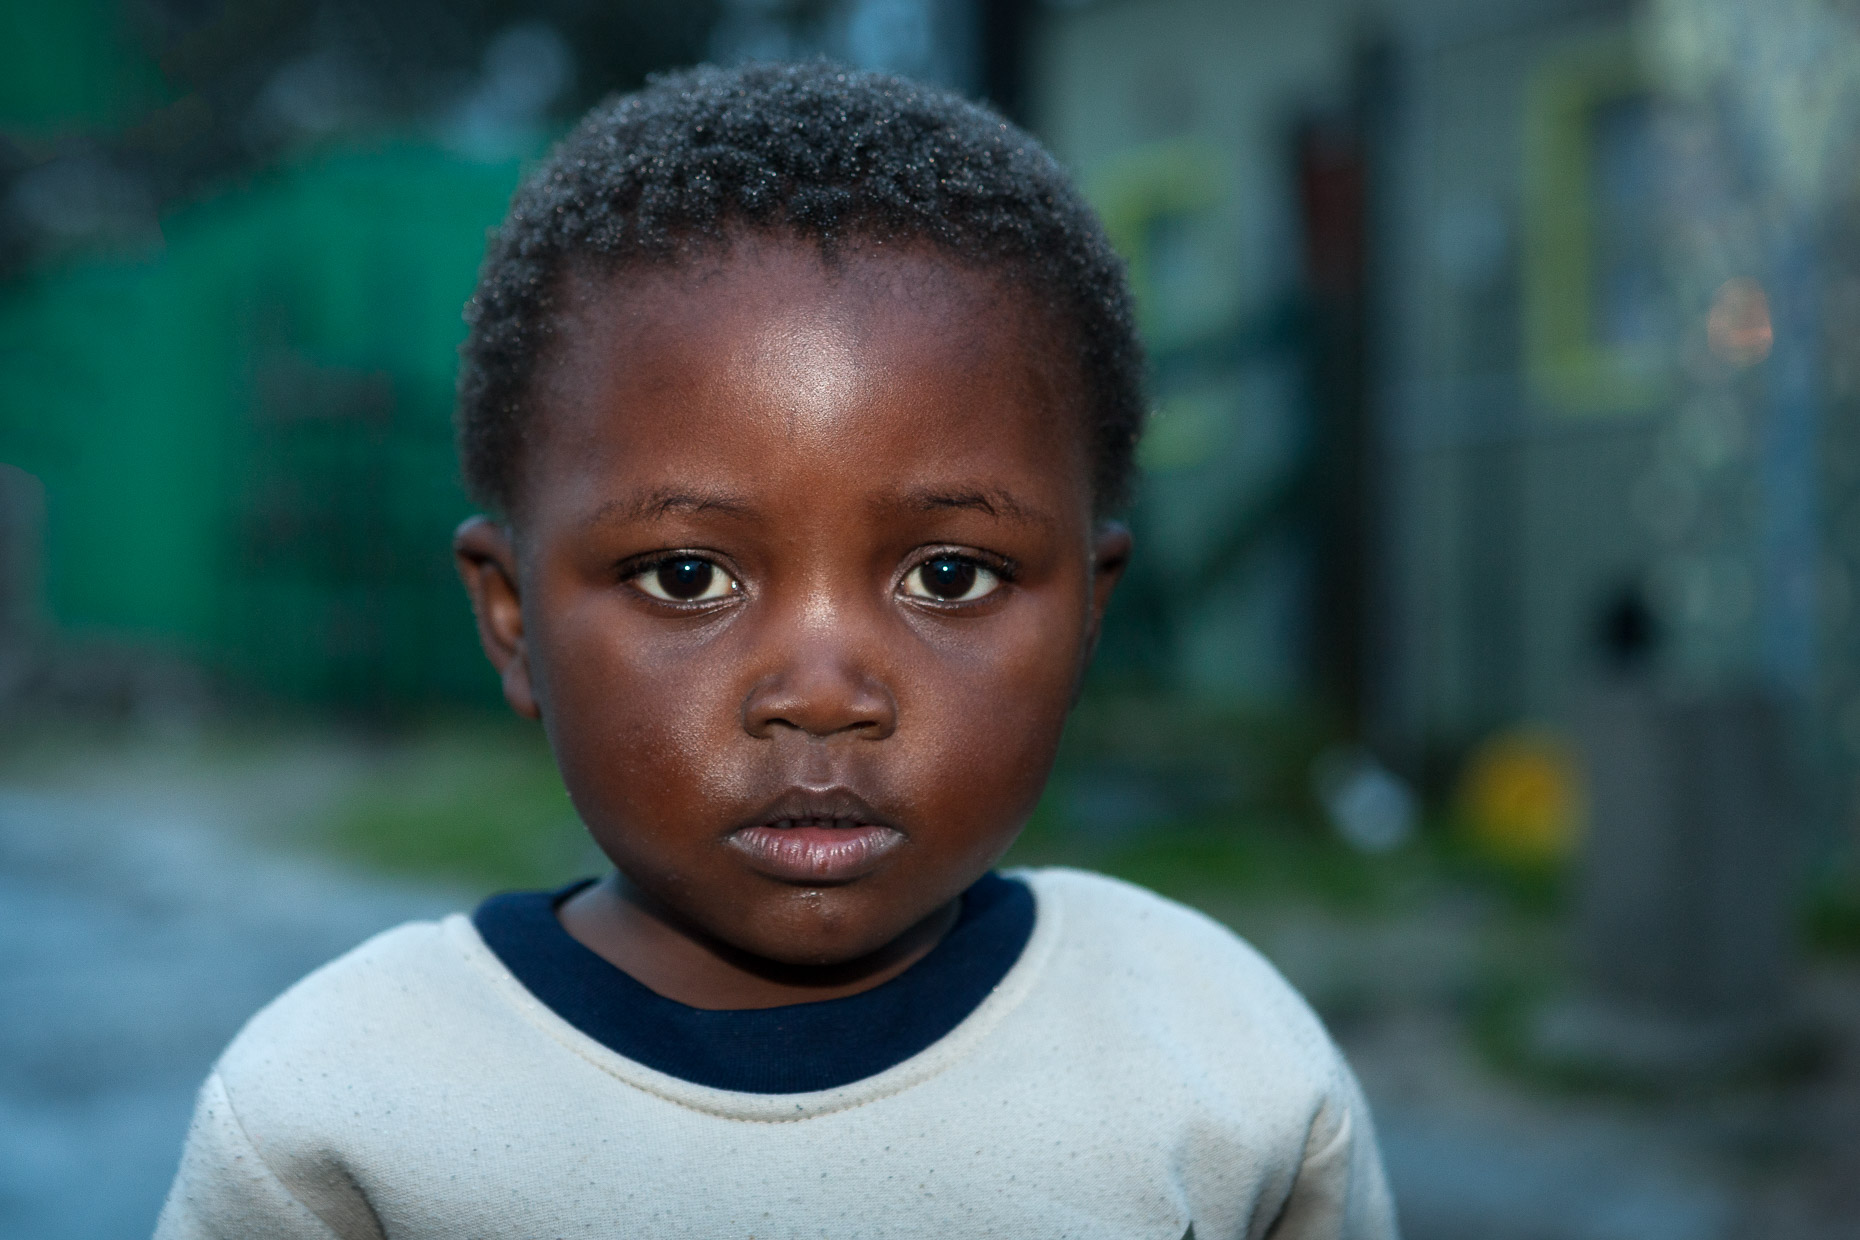 Young boy in the Townships of Cape Town, South Africa